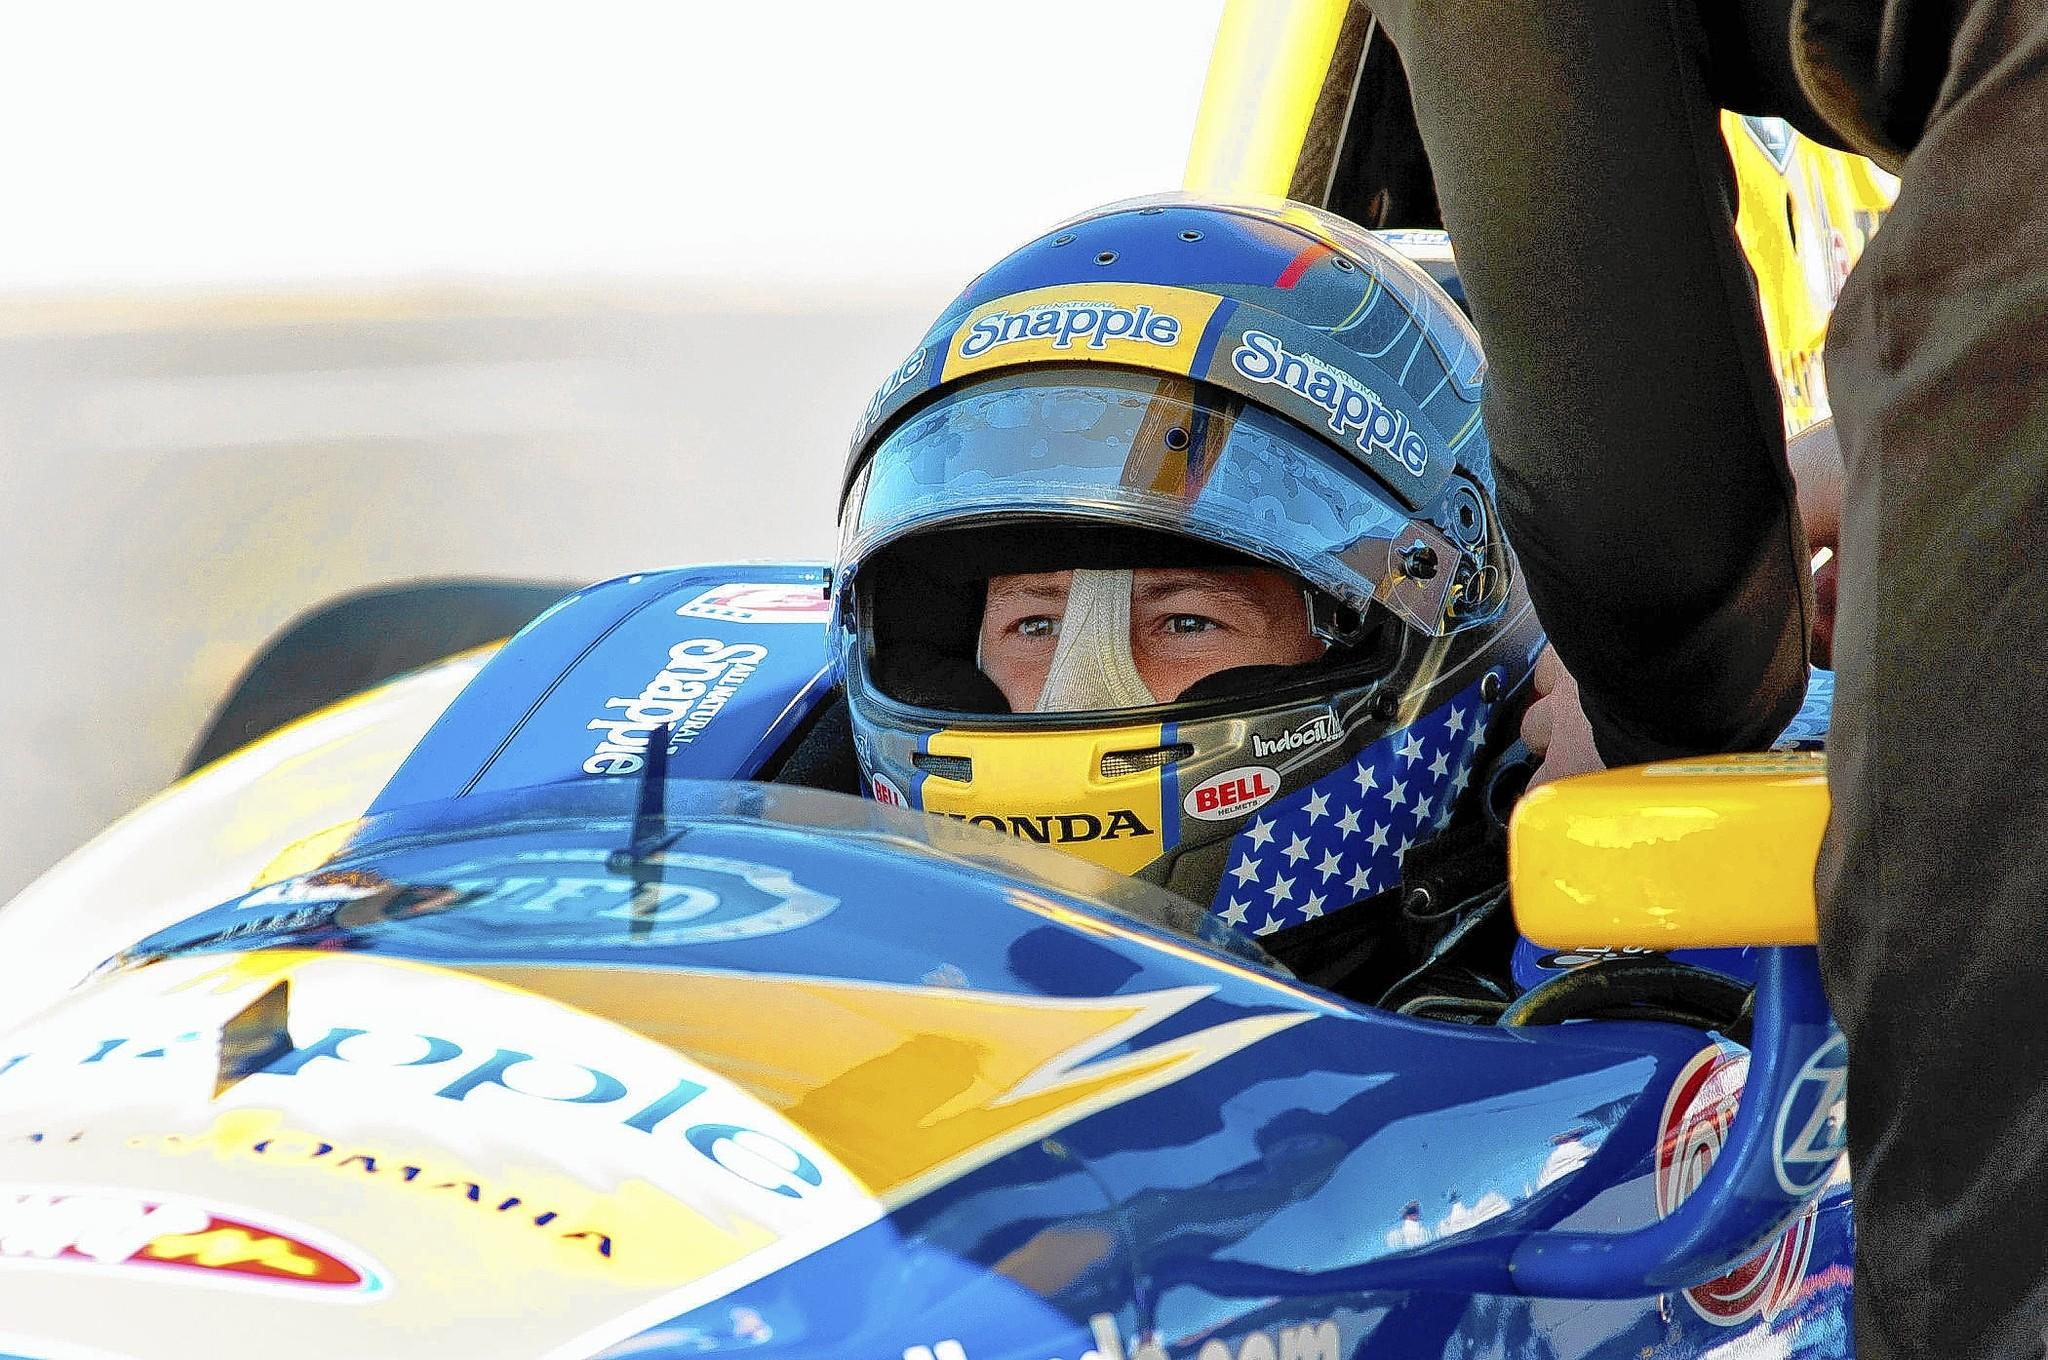 Marco Andretti is in 10th place in the season standings for IndyCar heading into Sunday's race at The Milwaukee Mile.